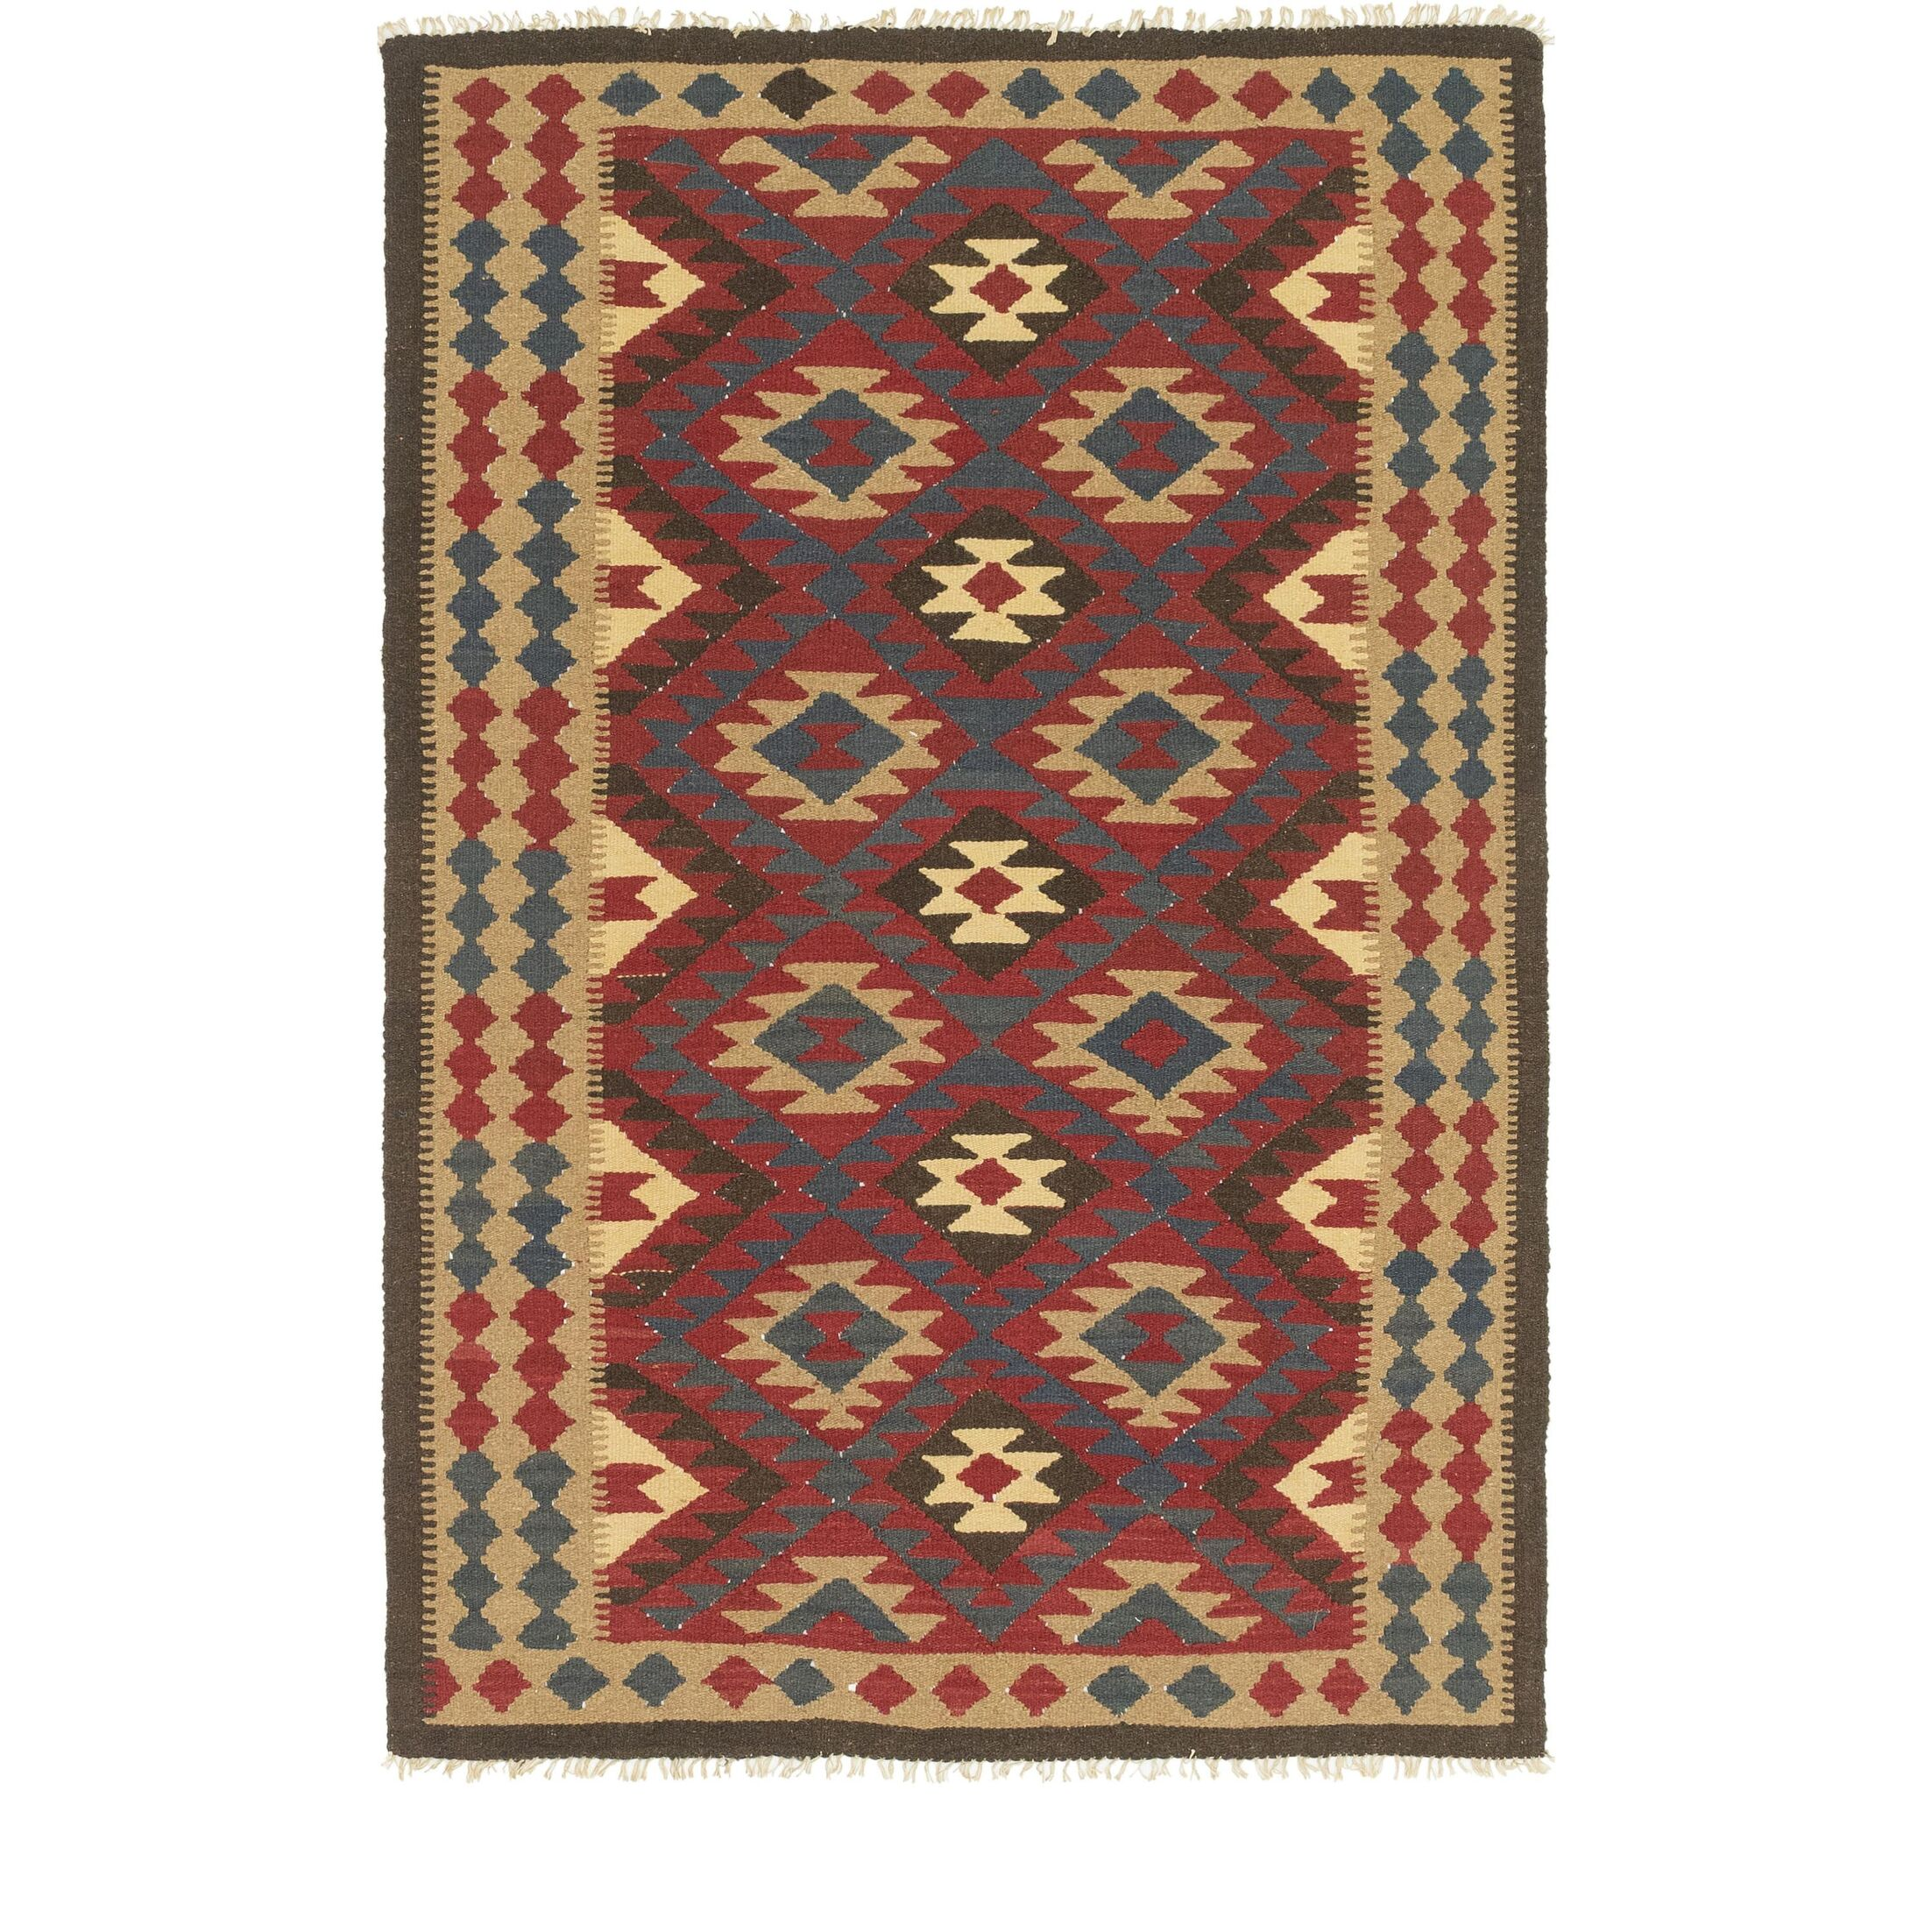 One-of-a-Kind Lorain Hand-Knotted 5' x 8' Wool Burgundy/Orange Area Rug